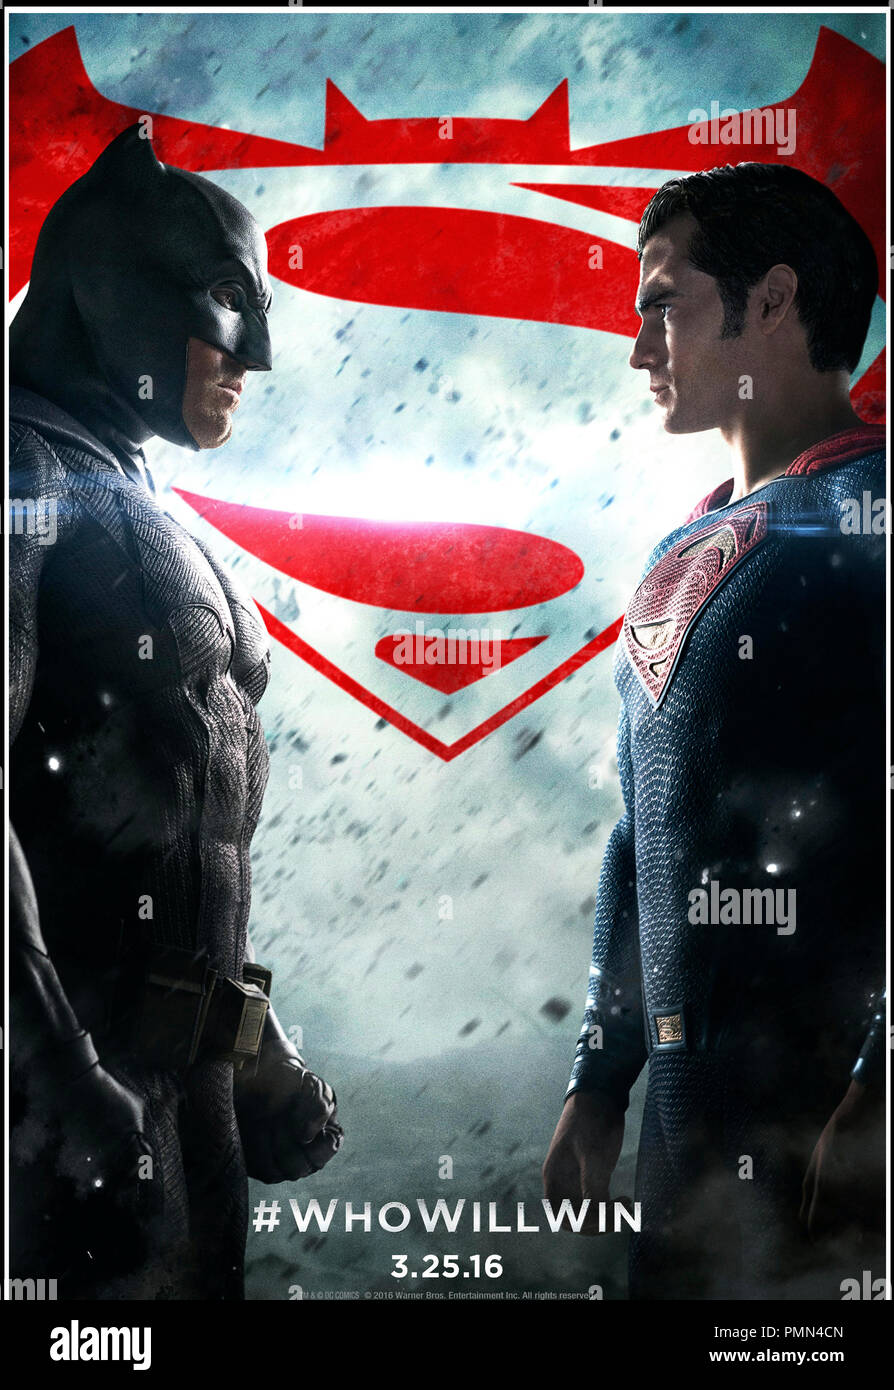 Prod DB © Warner Bros. - DC Entertainment - RatPac-Dune Entertainment - Syncopy / DR BATMAN V SUPERMAN: L'AUBE DE LA JUSTICE (BATMAN VS. SUPERMAN: DAWN OF JUSTICE) de Zack Snyder 2016 USA teaser americain super heros d'apres les personnages créés par Bob Kane et Bill Finger (Batman) et Jerry Siegel et Joe Shuster (Superman) - Stock Image